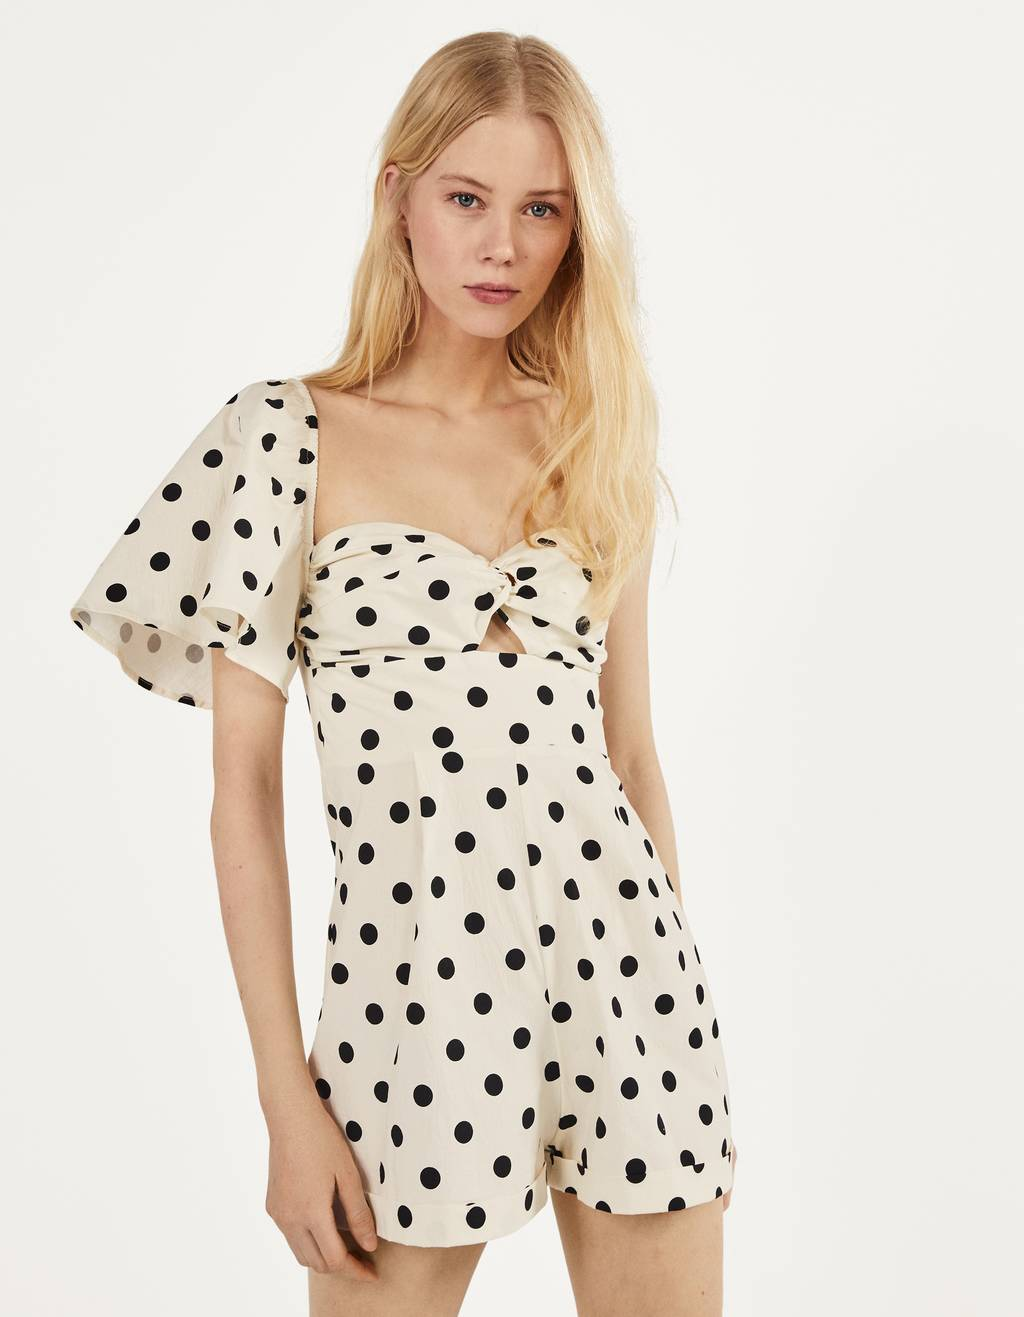 Polka dot playsuit